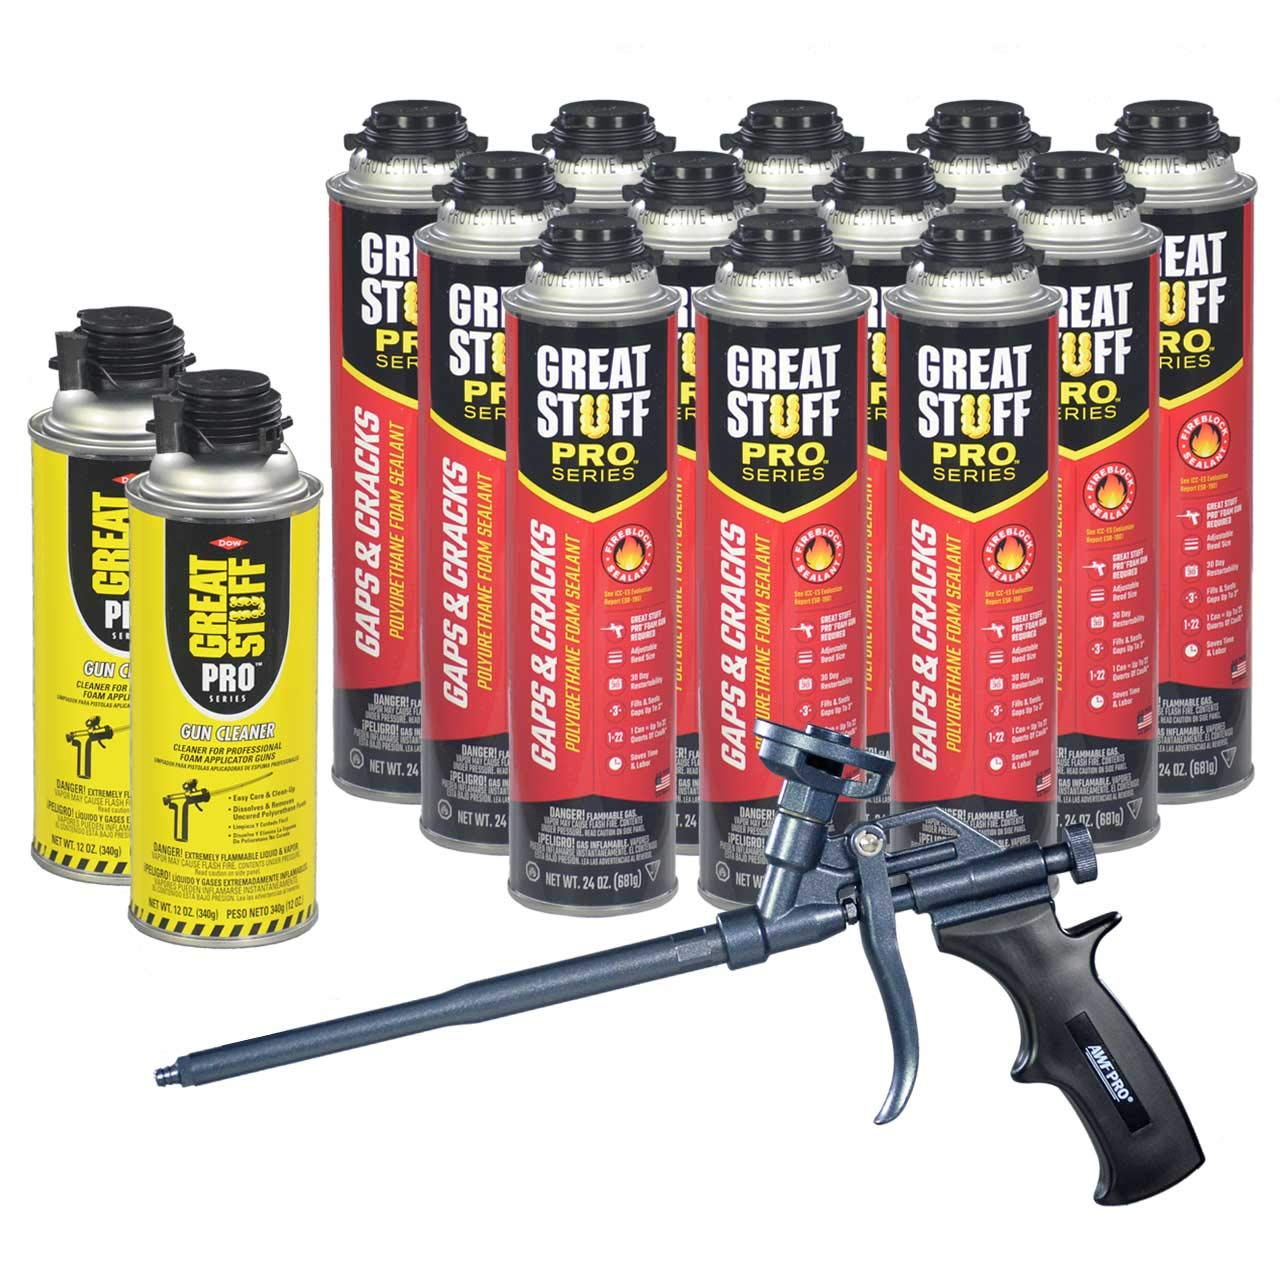 Dow Great Stuff Pro Gaps and Cracks 24 oz Foam (12) + AWF Teflon Pro Foam Gun (1) + Dow Great Stuff Pro foam Gun Cleaner (2) by Great Stuff